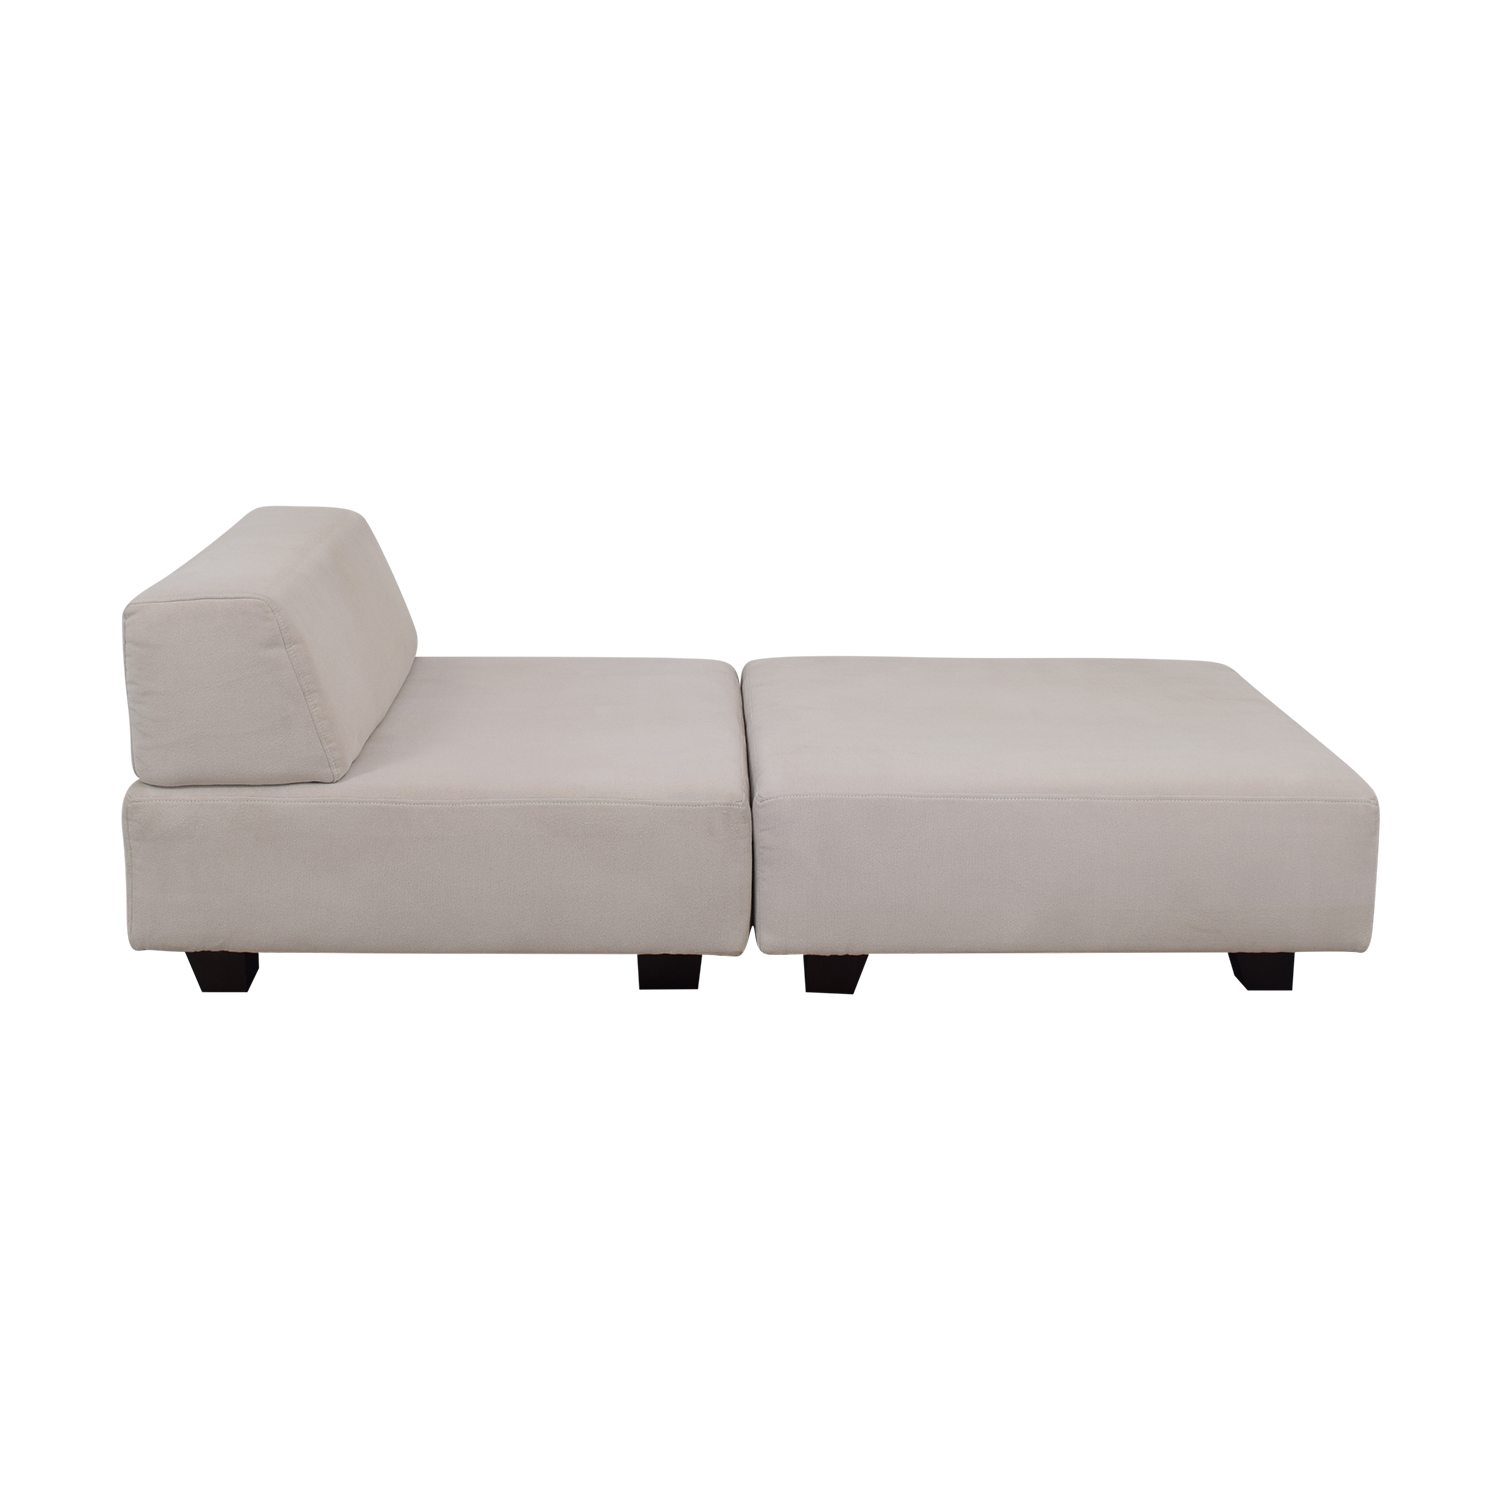 West Elm Tillary White Chaise Lounge West Elm